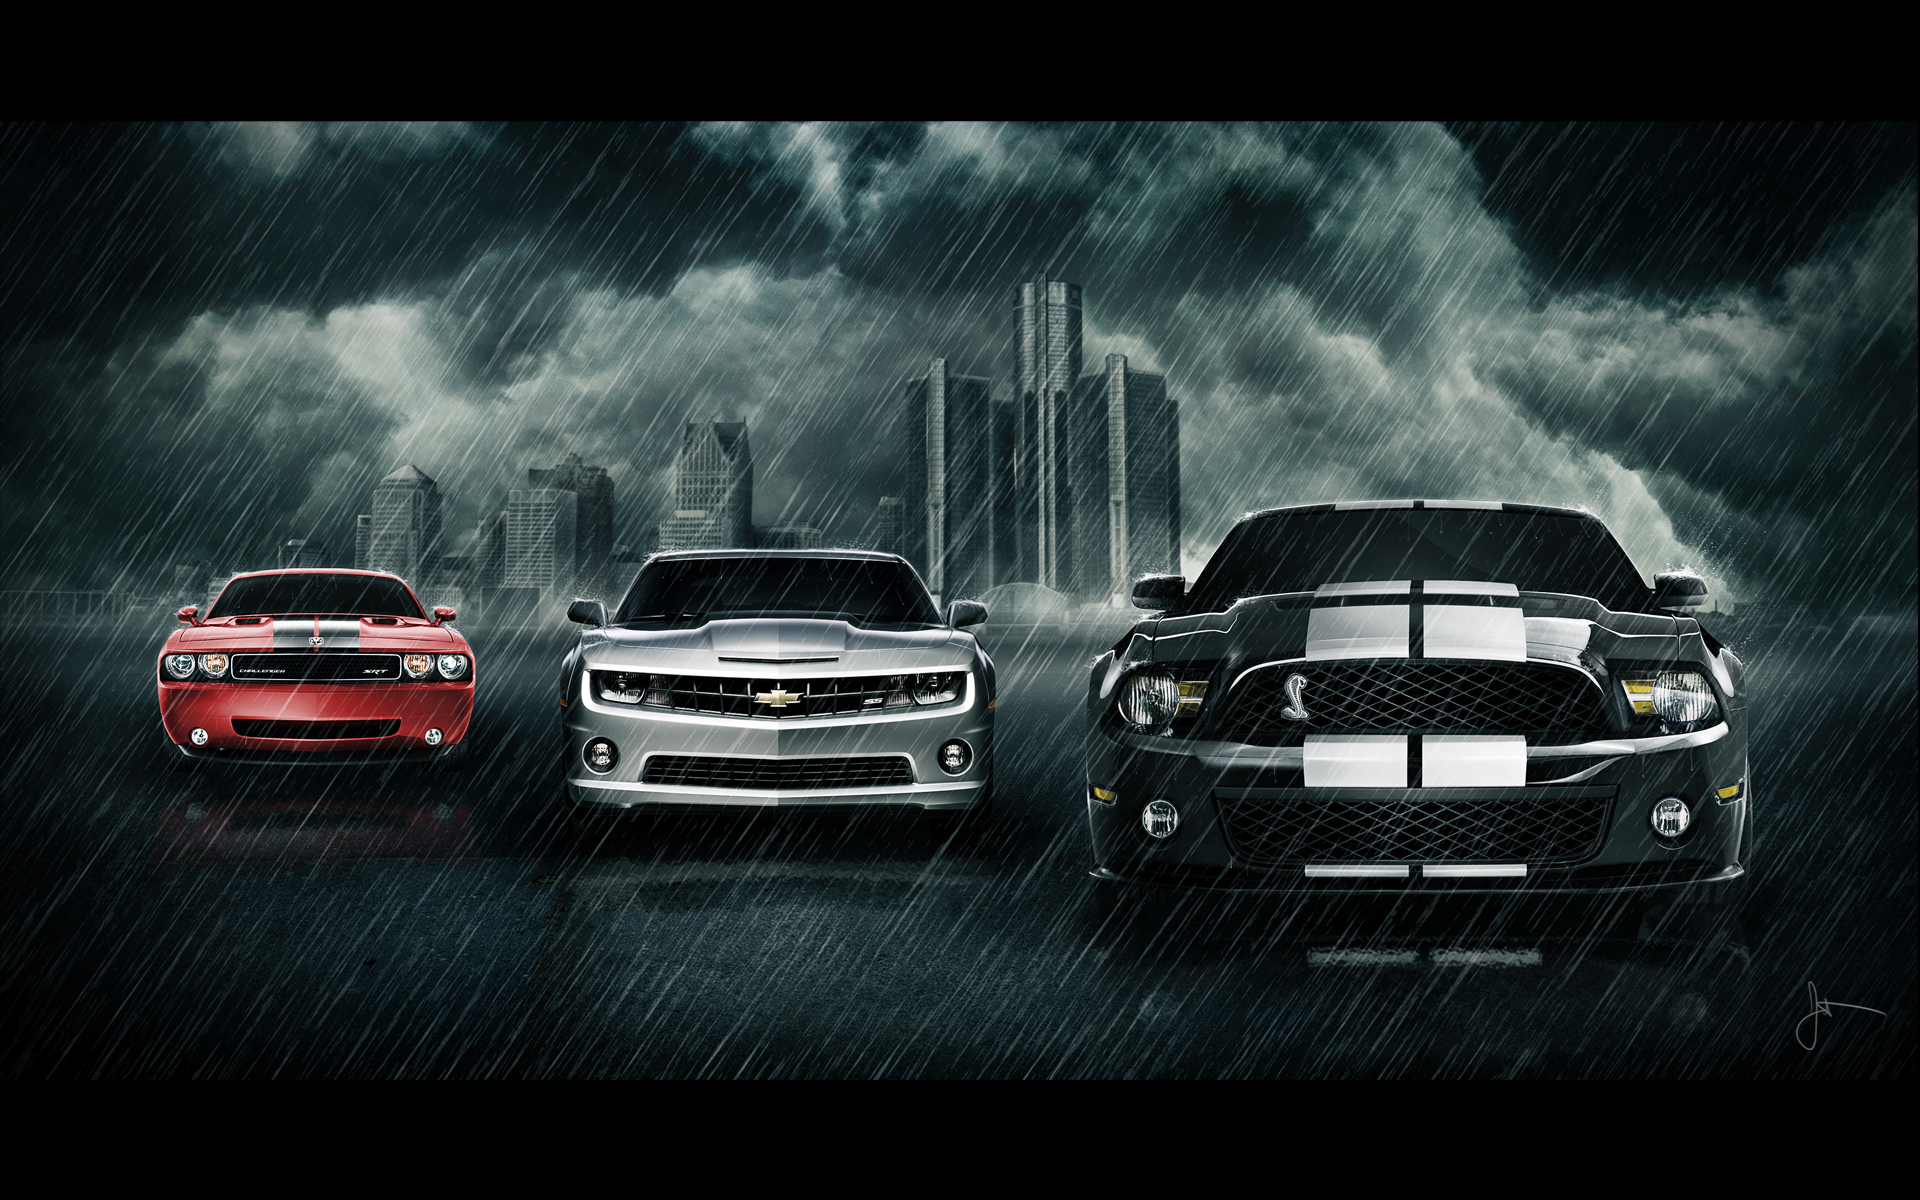 Best Collection Of Mustang Wallpapers For Desktop Screens